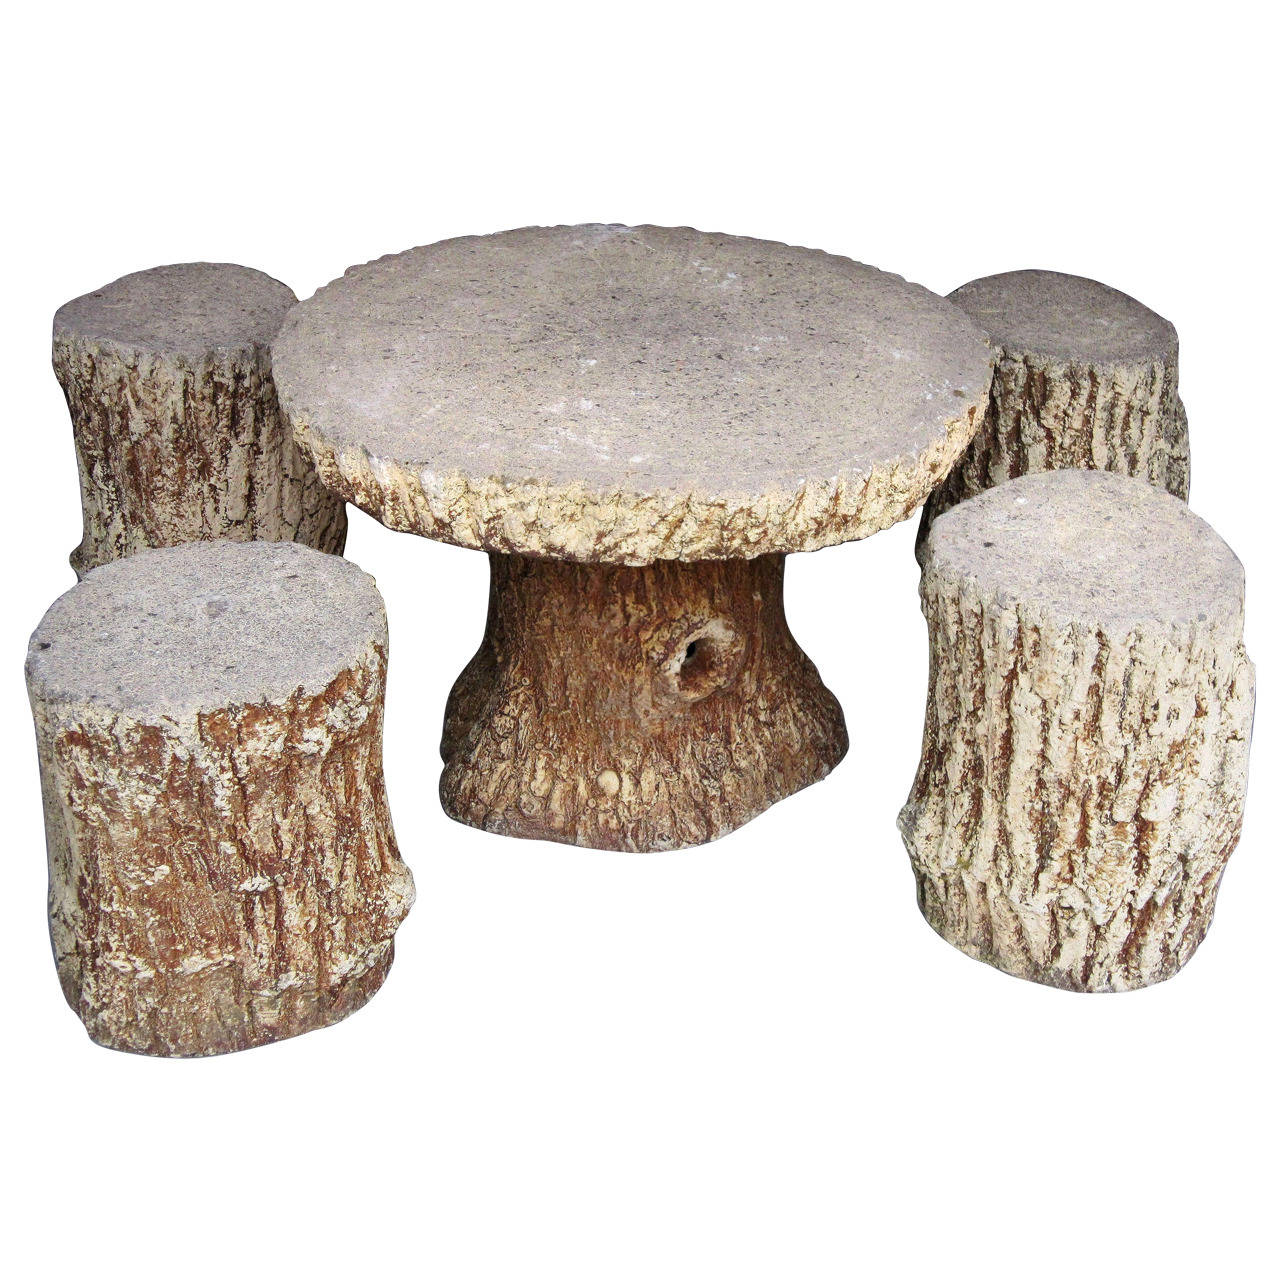 Faux Bois Garden Stone Set, Table And Four Stools